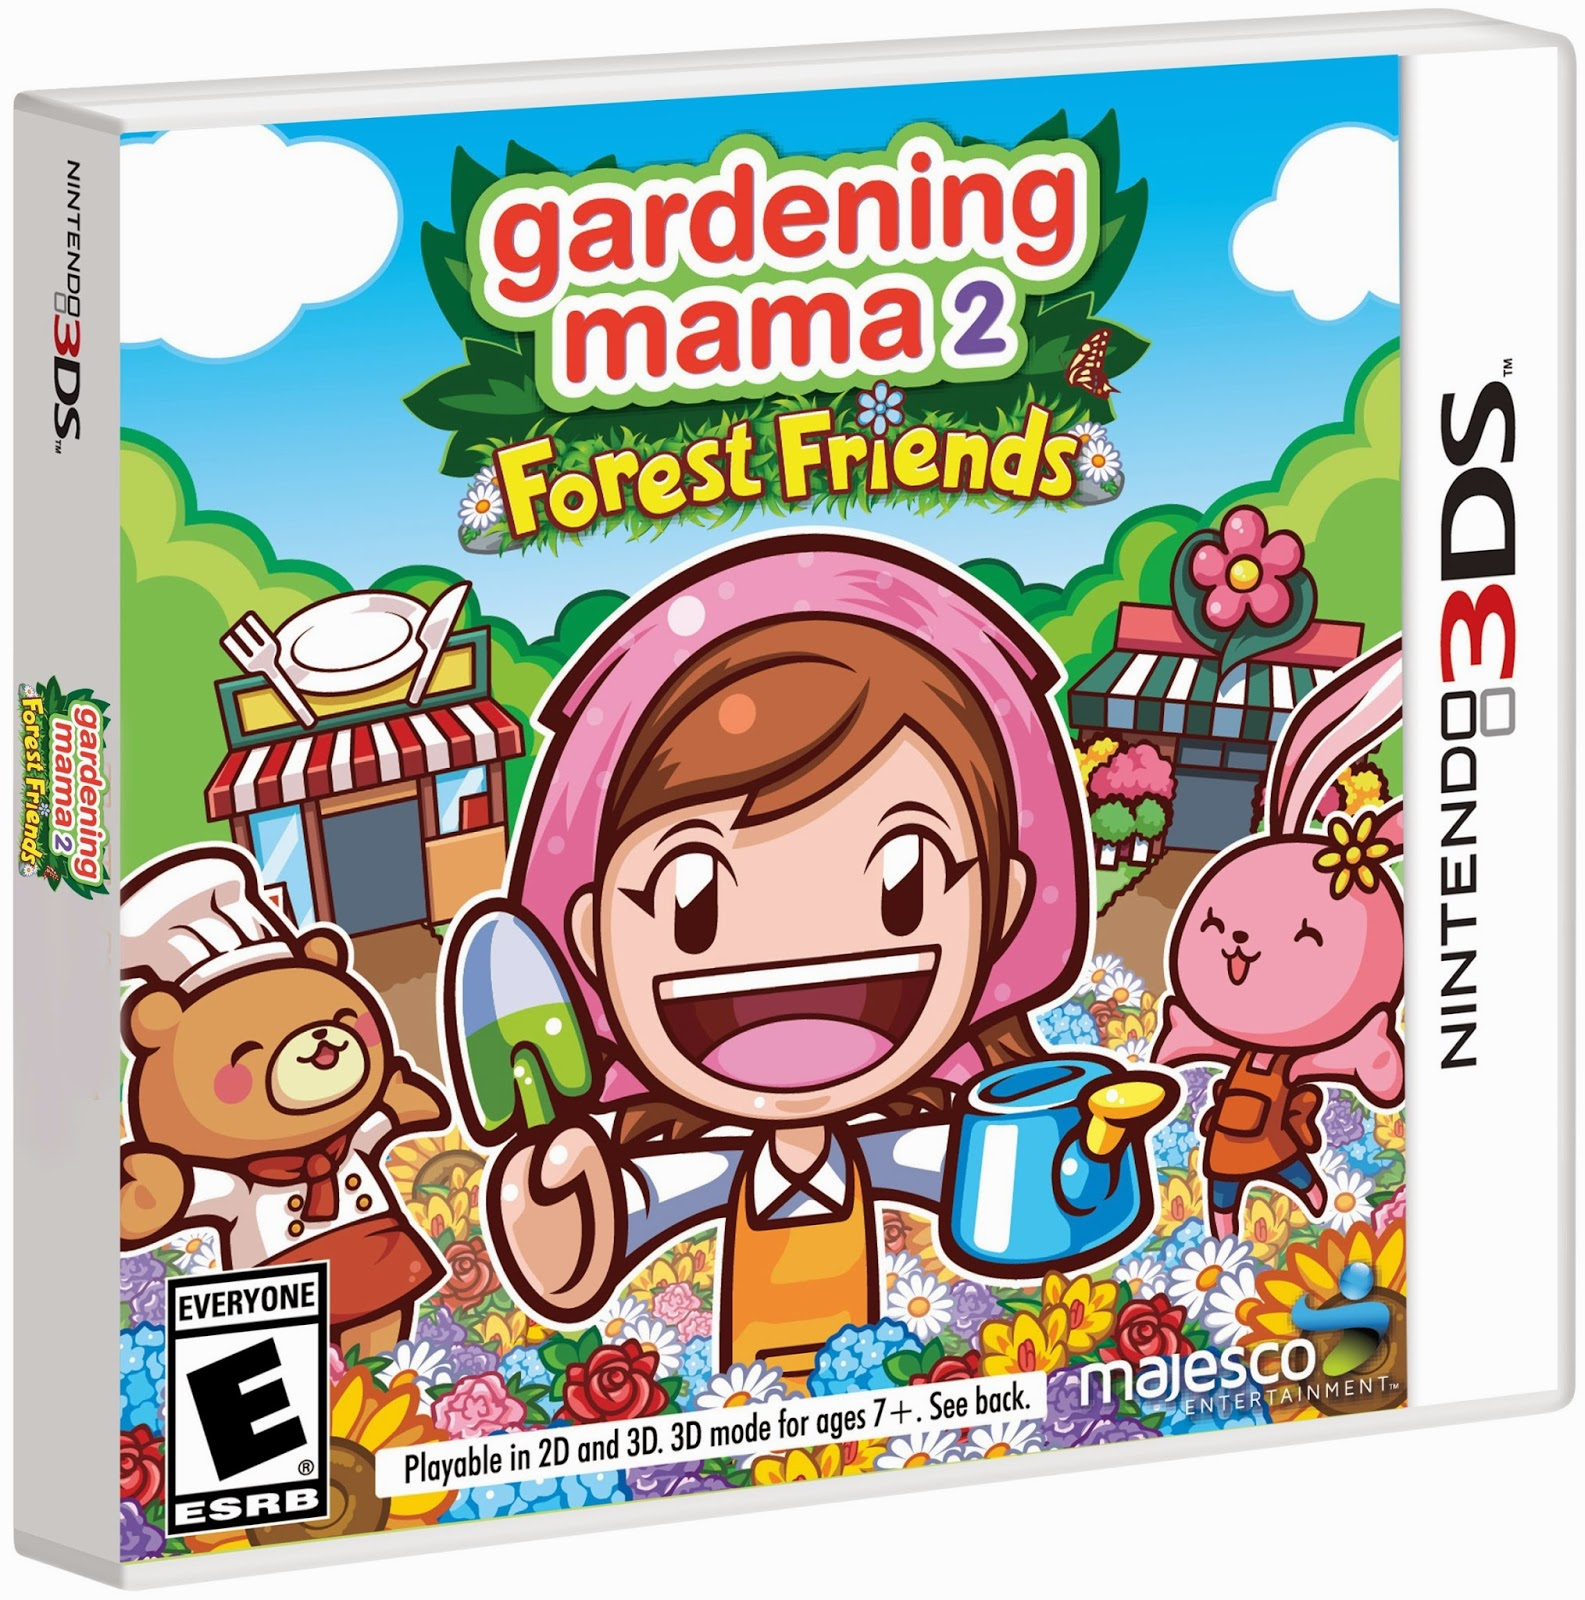 http://stacytilton.blogspot.com/2014/12/holiday-gift-guide-gardening-mama-2-and.html